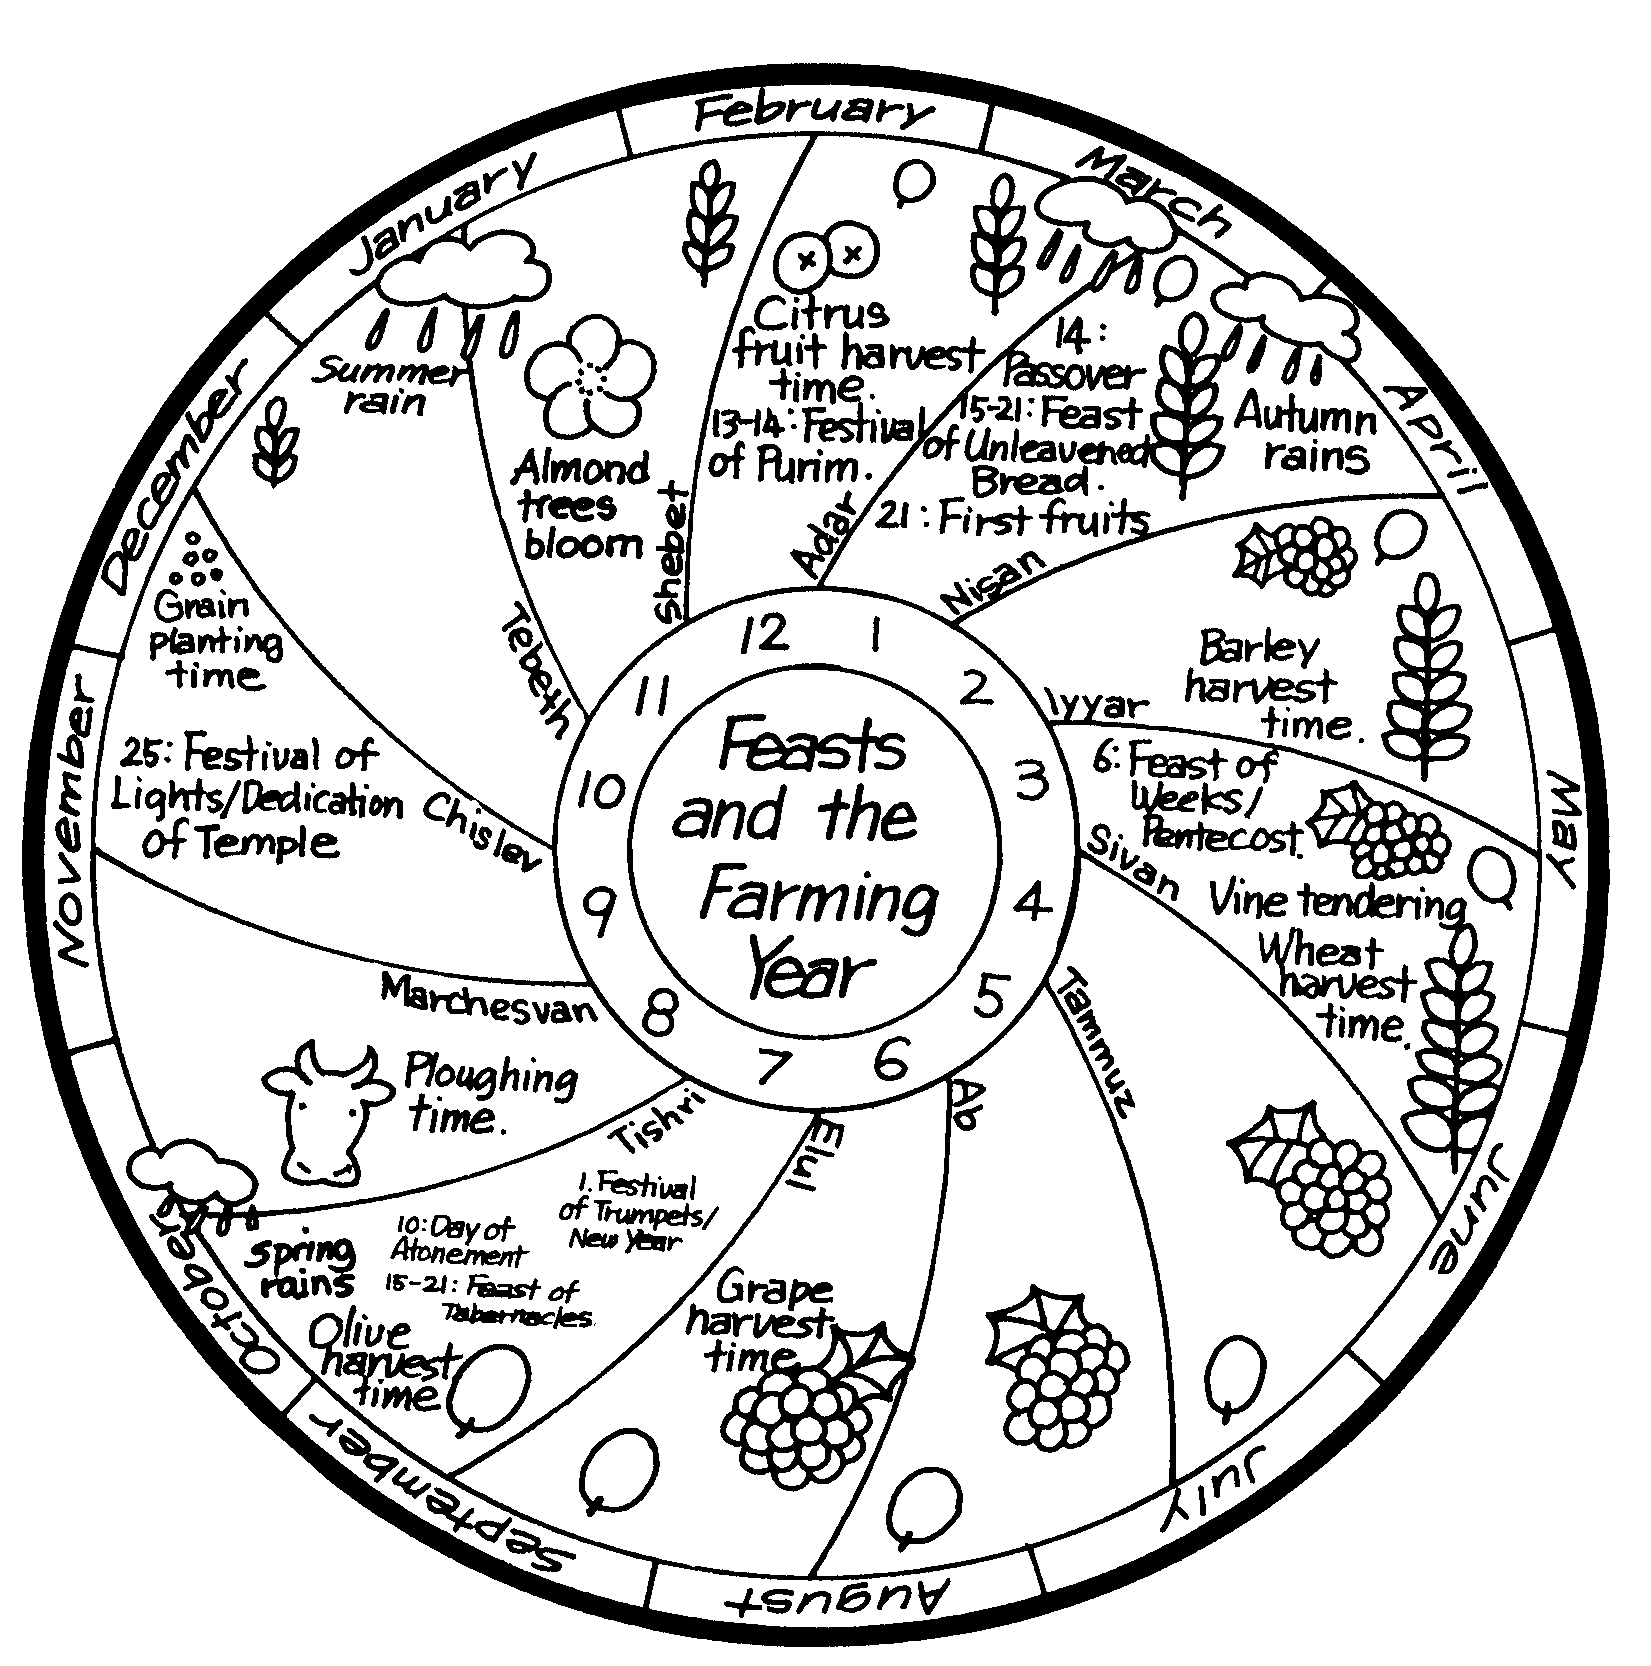 Bible Study – Jewish Calendar With Months And Feasts In New Year According To The Hebrew Calendar